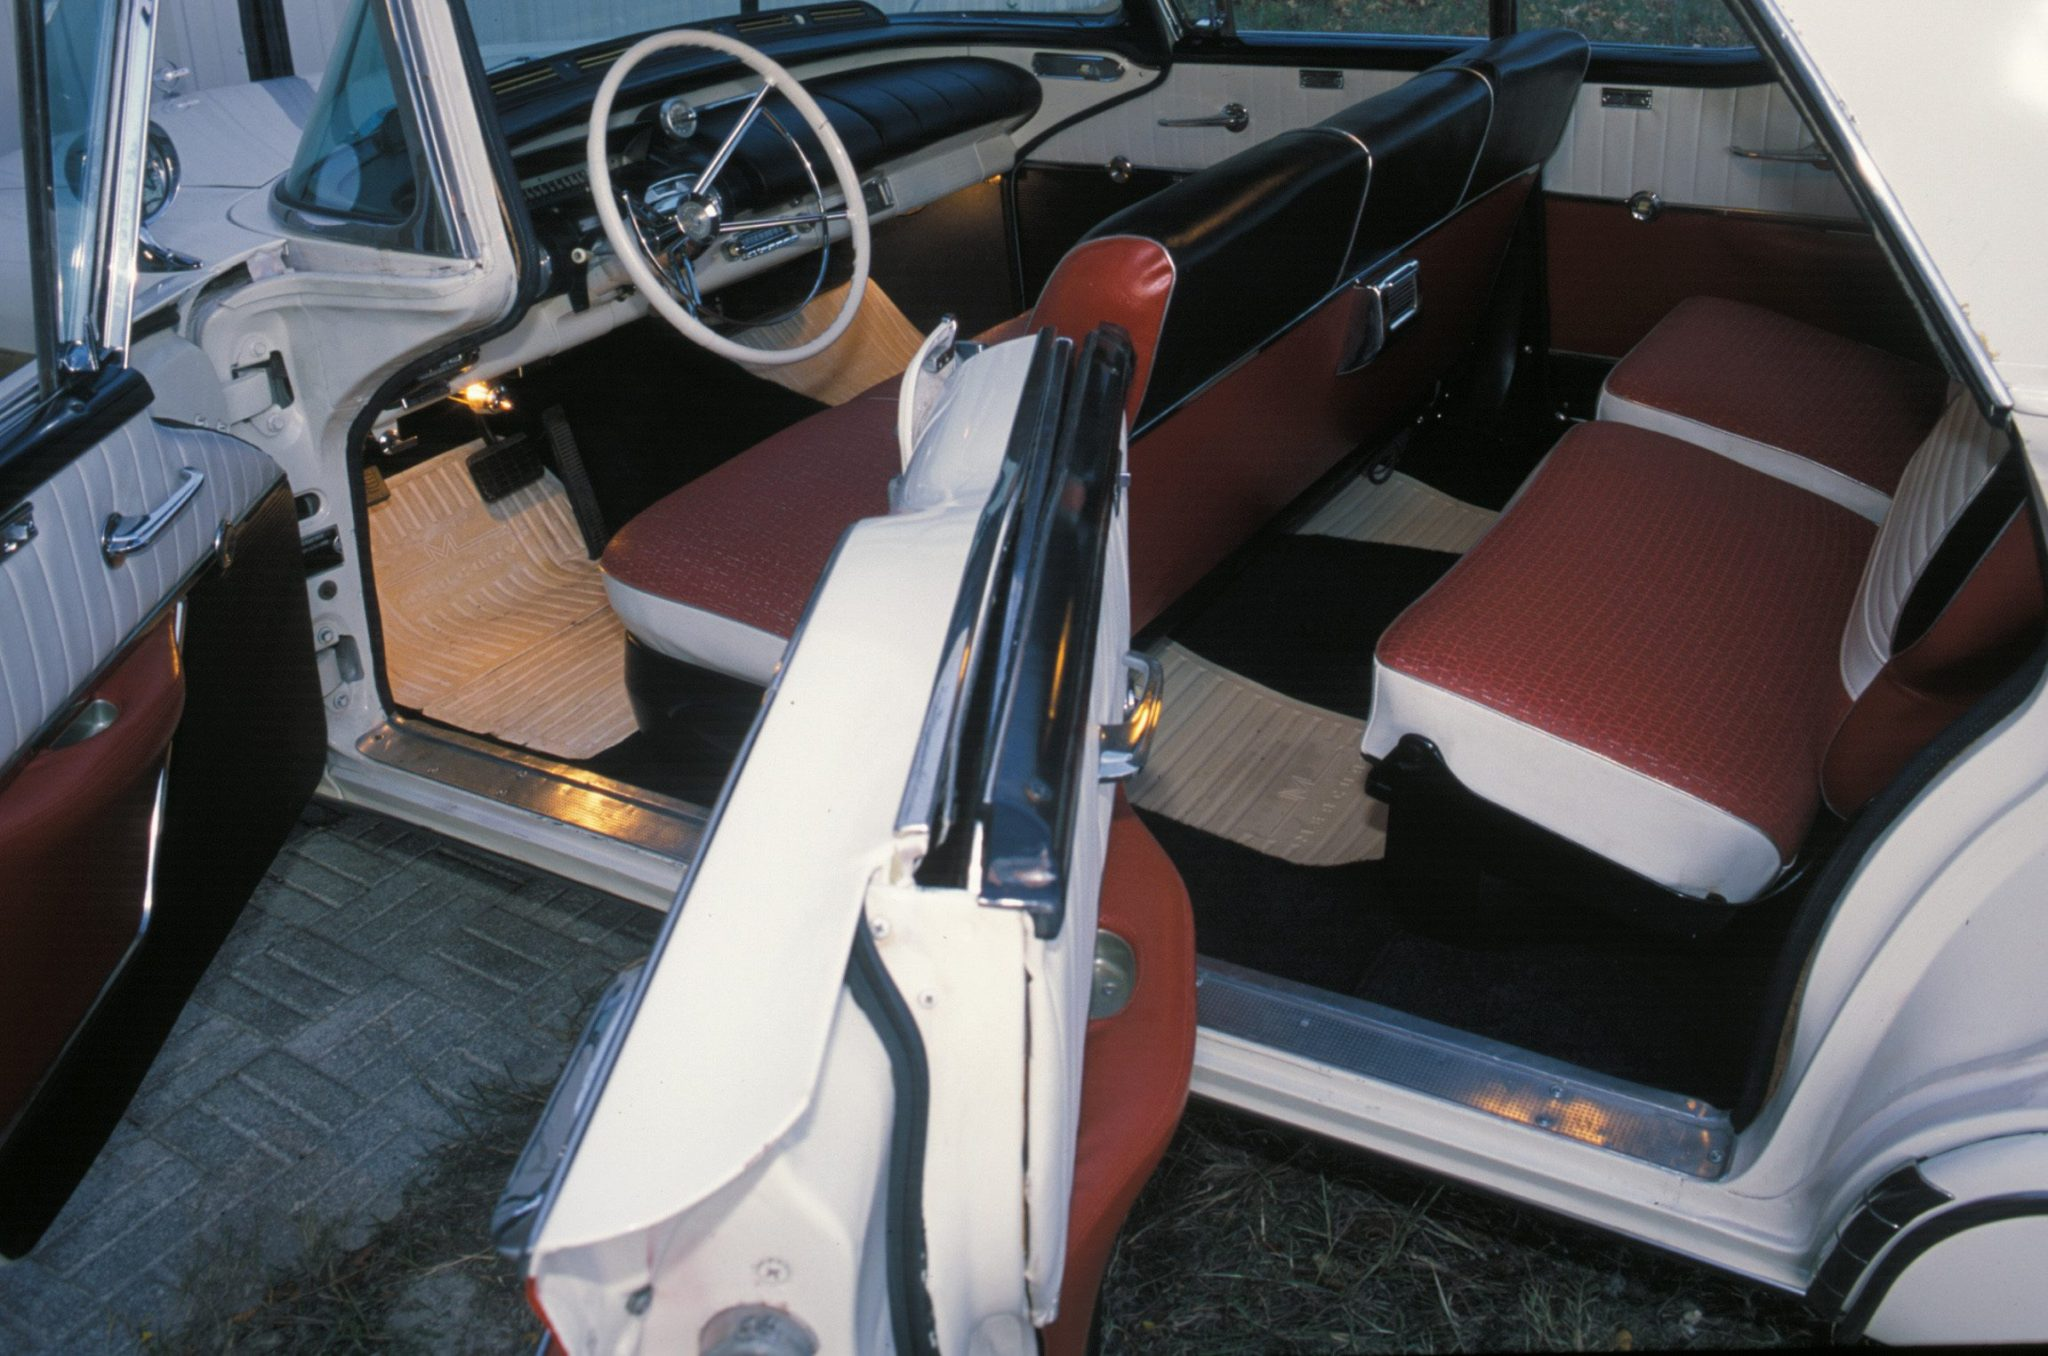 1957 Mercury Colony Park Interior With Tri-tone Upholstery